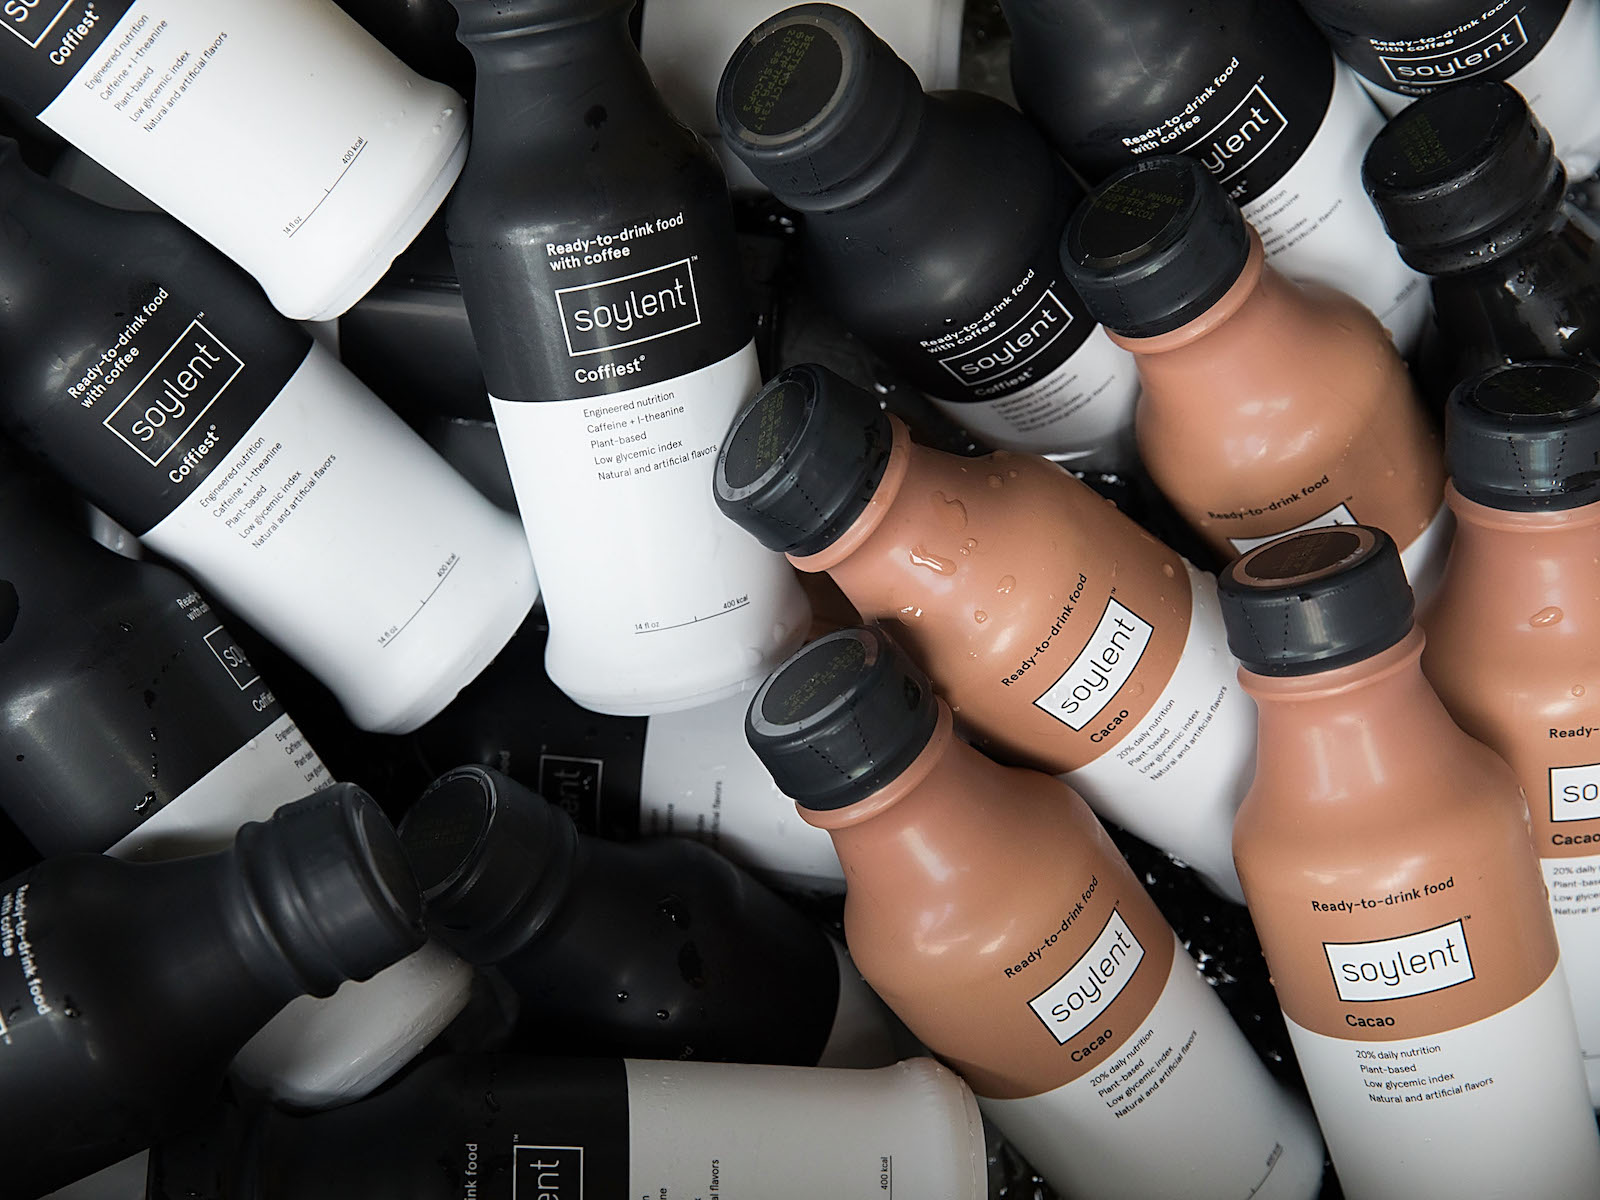 Soylent Meal Replacement Drink Heads to Walmart StoresNationwide